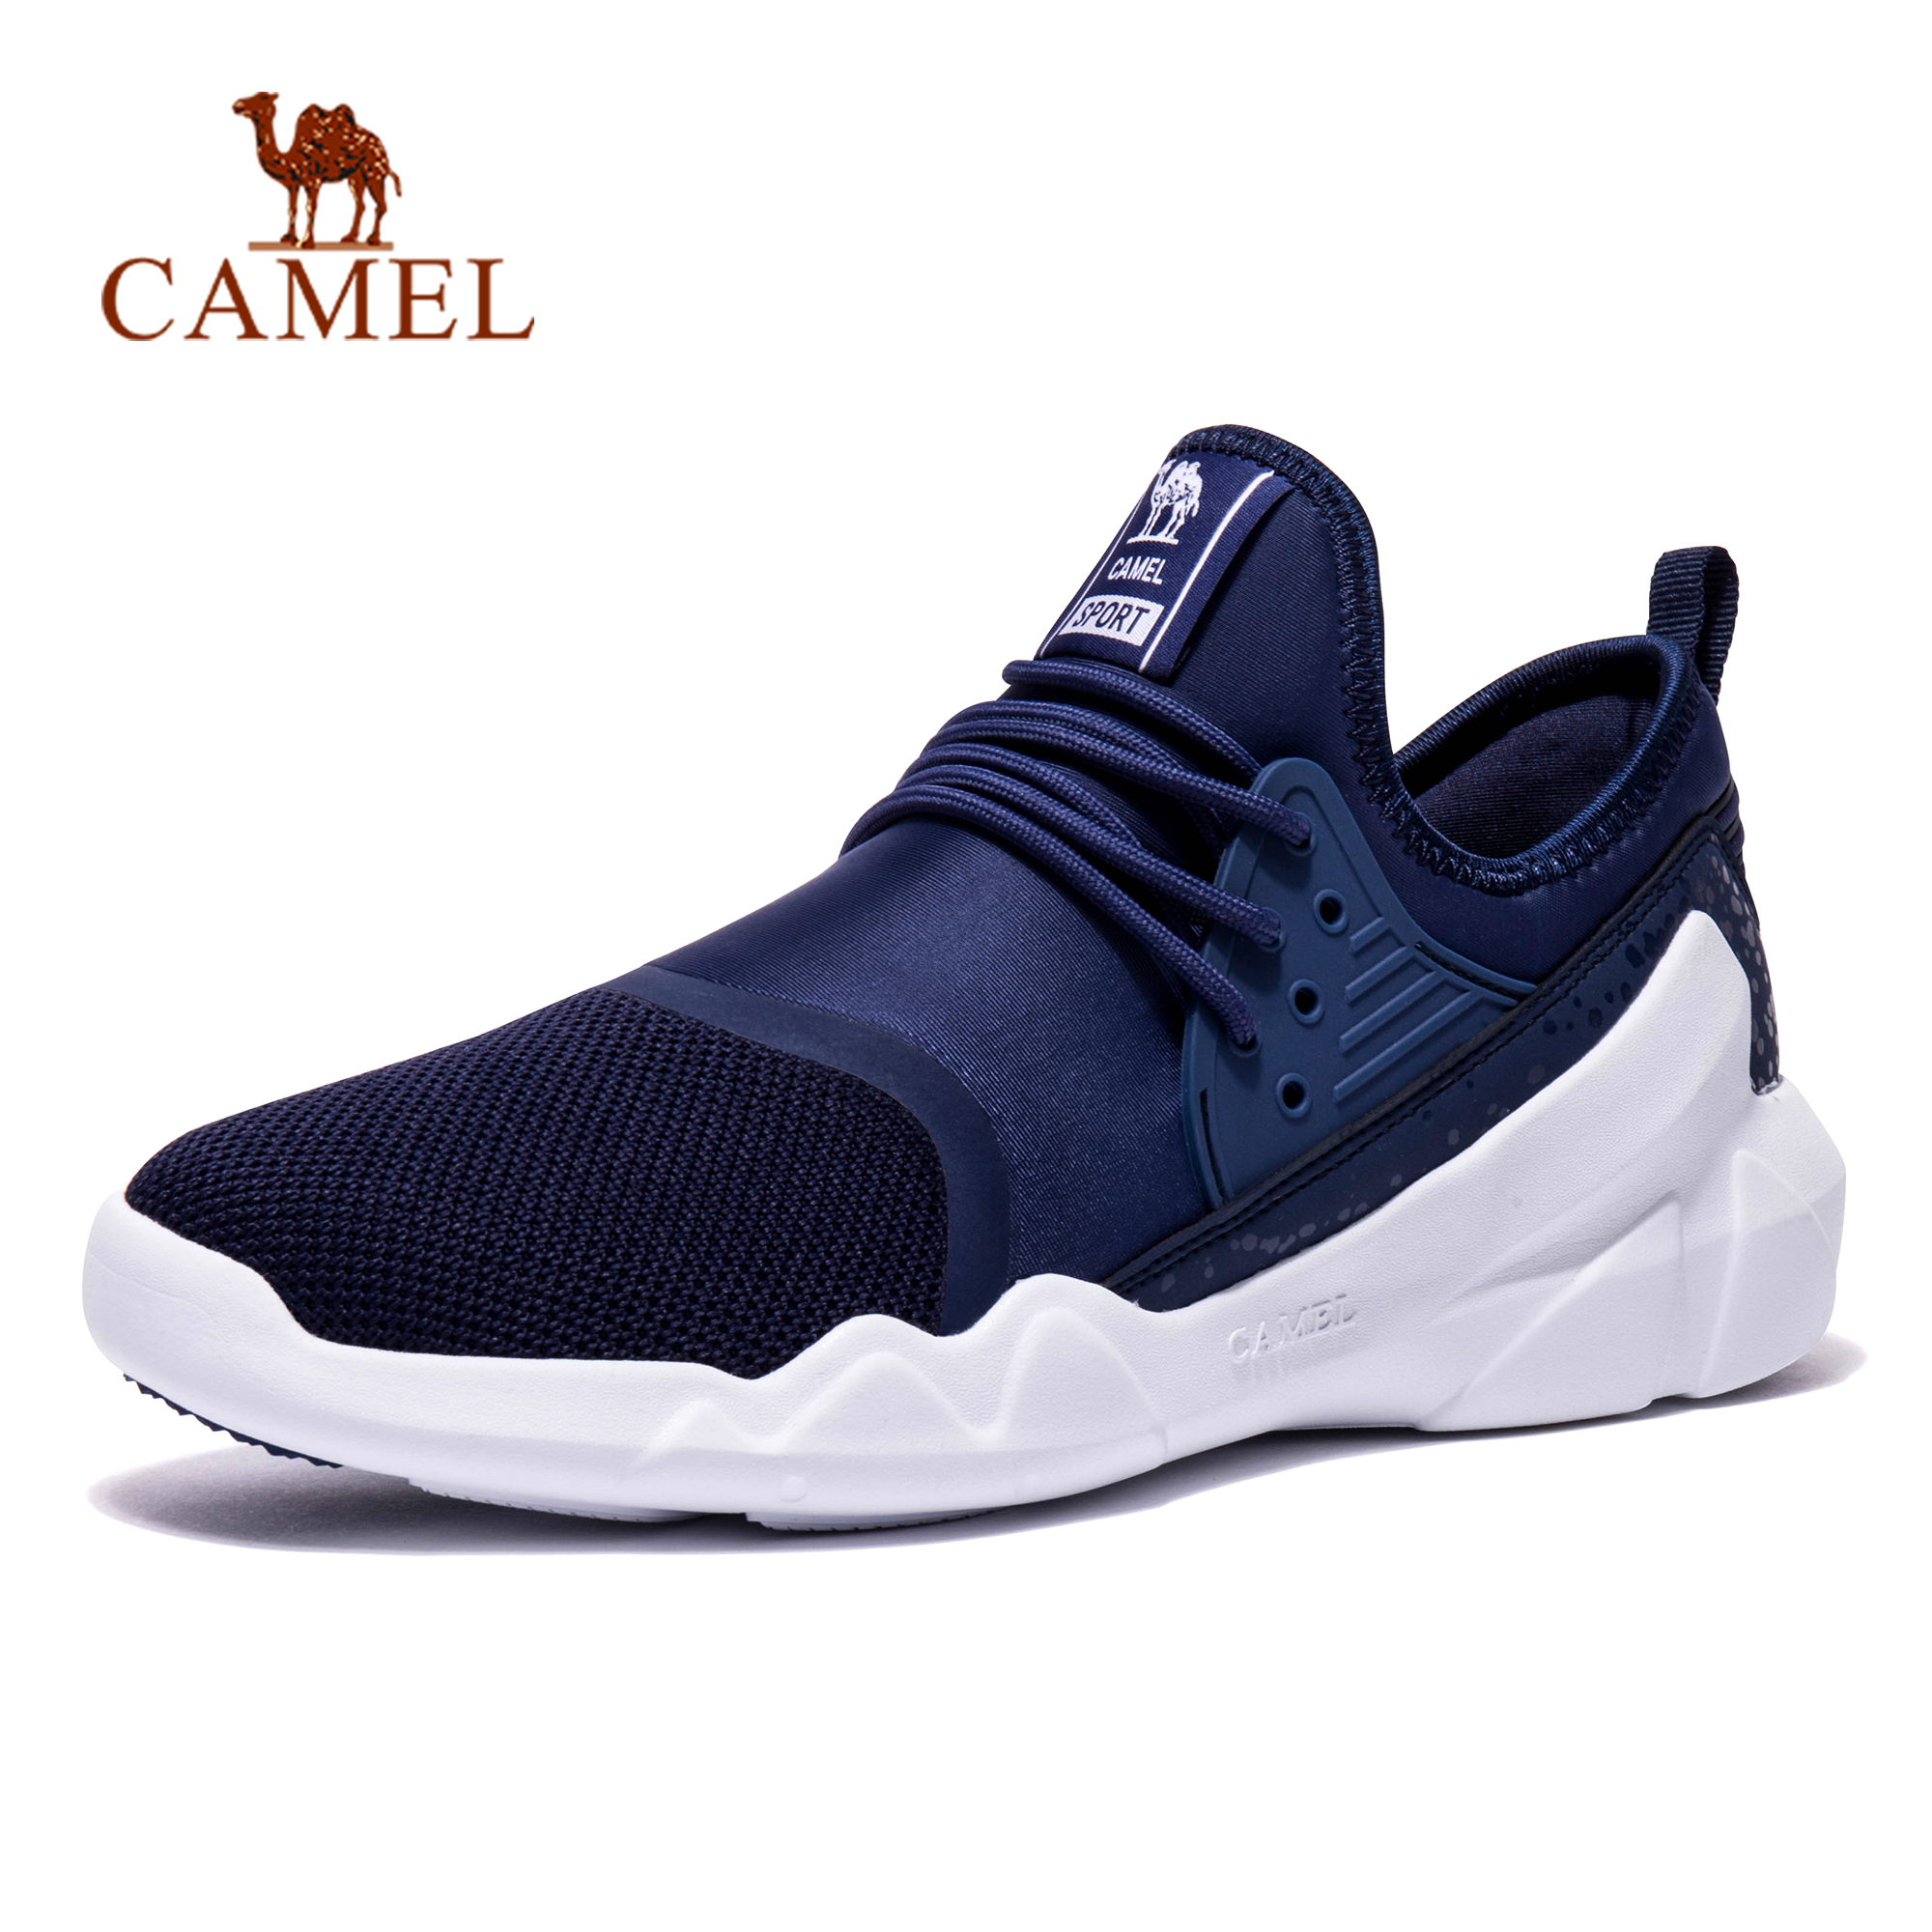 CAMEL Men Women Spring Summer Sports Shoes Lightweight Anti-skid Breathable Mesh Walking Jogging Athletic Sneakers